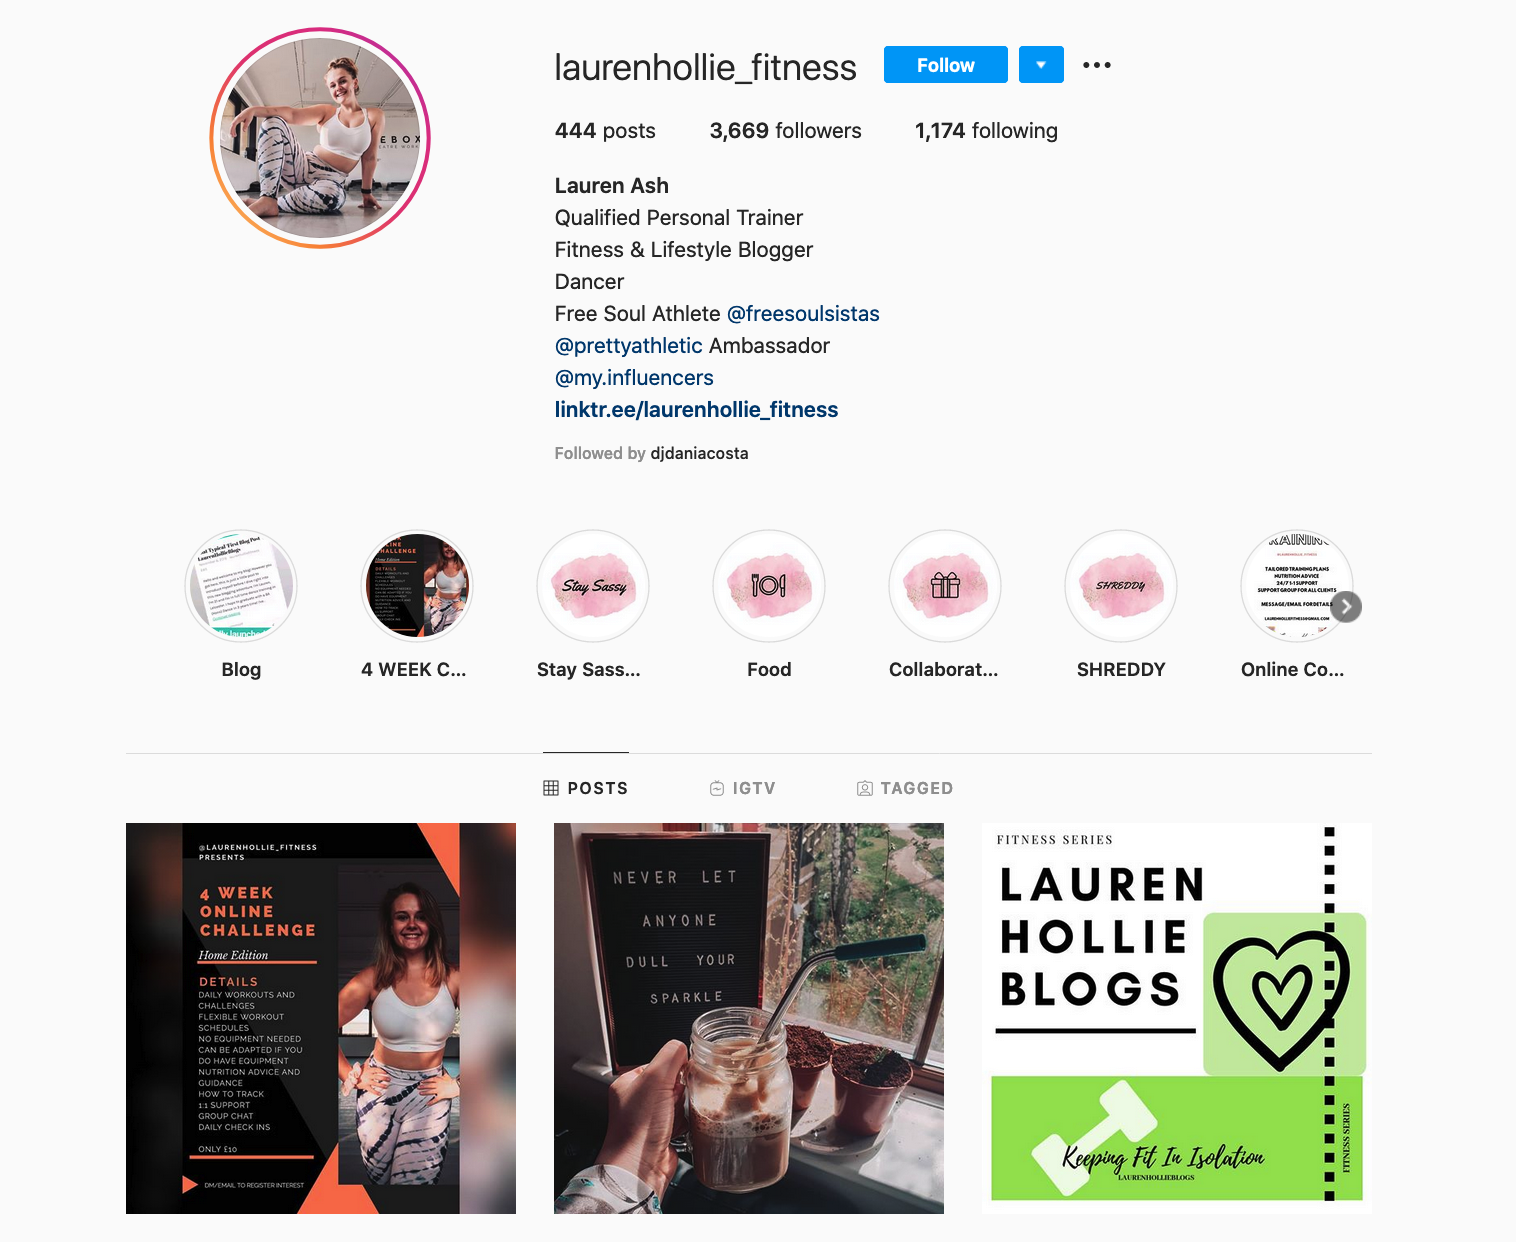 Lauren Ash | Fitness Influencer and Personal Trainer